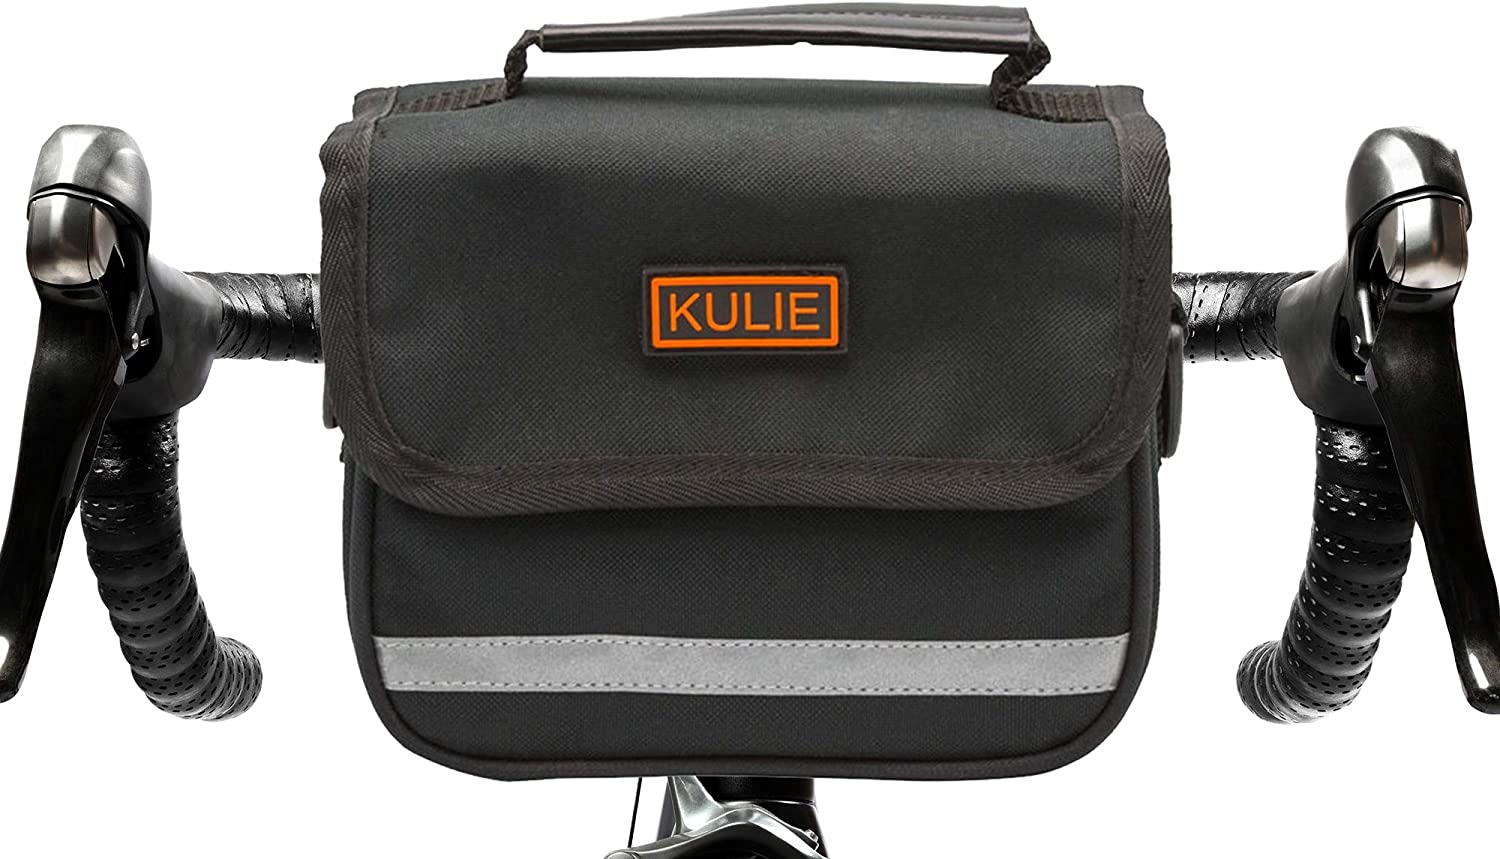 Kulie 2L UrbanTourist Bicycle Bag|Bike Handlebar Stem Bag|Small Pouch Standout Style|Simple Reliable Universal Strap Mount|Waterproof Hand Contoured Firm Body| Removable Strap Converts to Crossbody